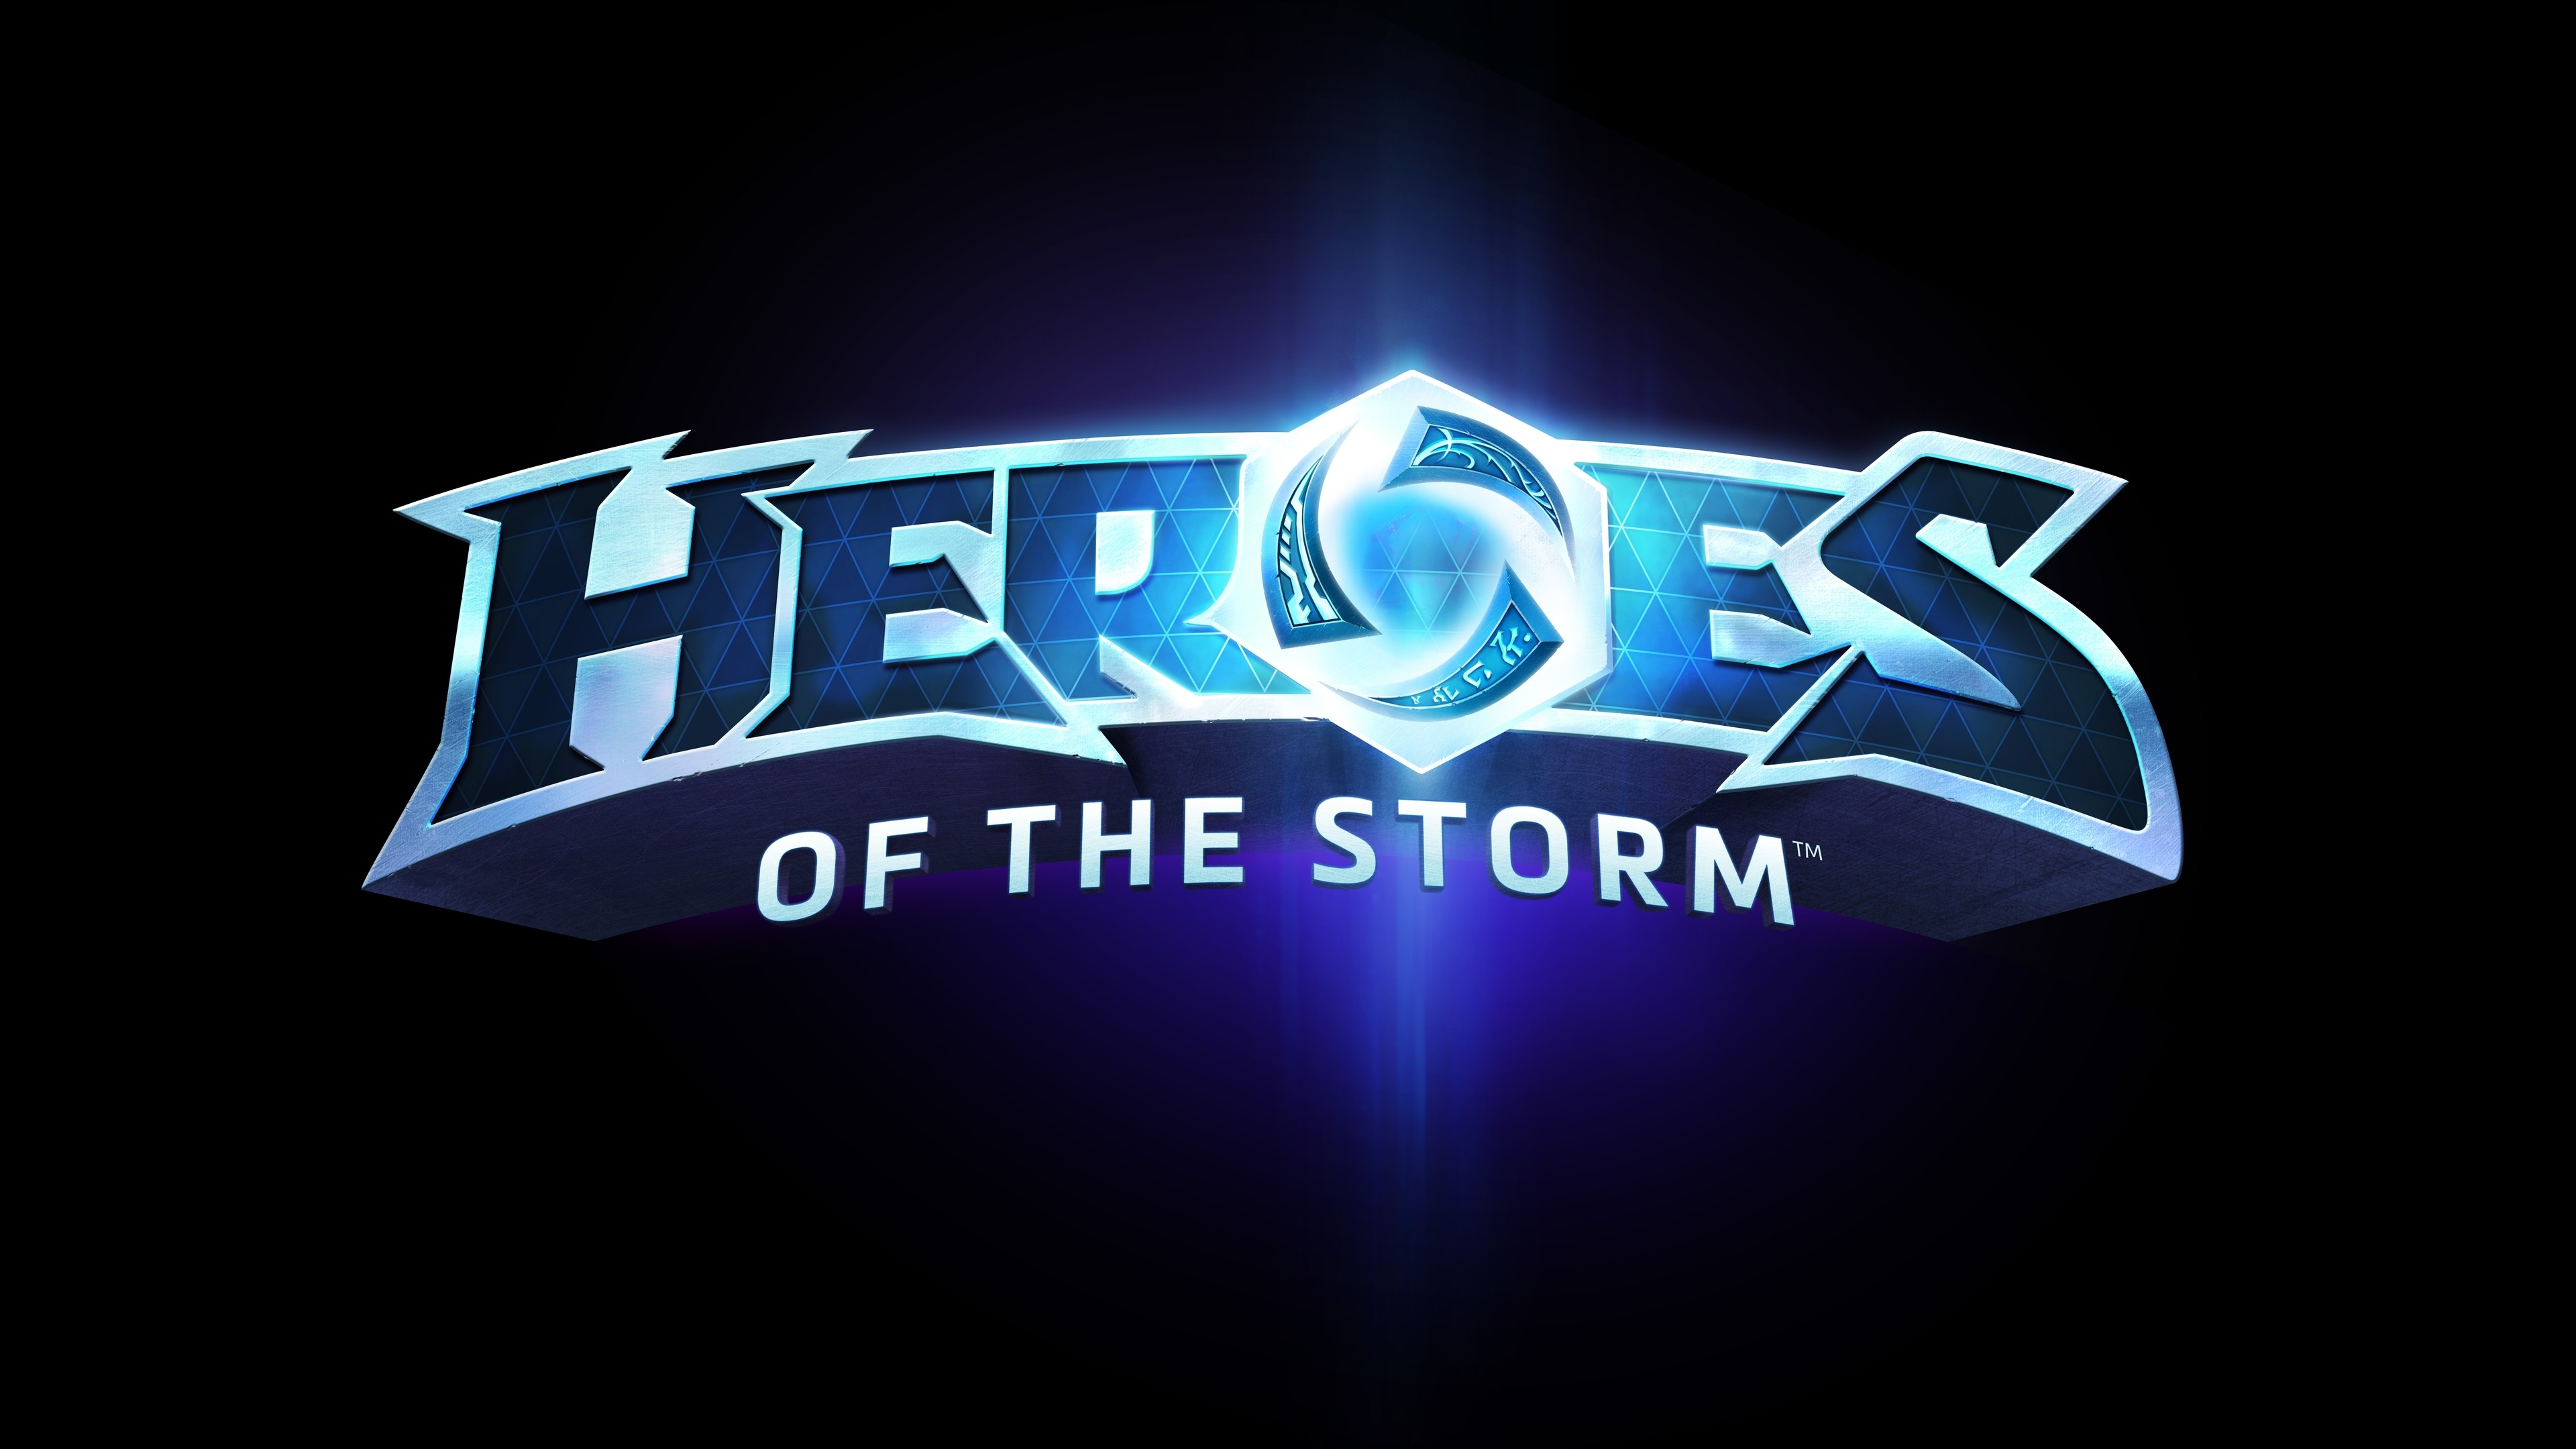 heroes of the storm logo widescreen wallpaper 61882